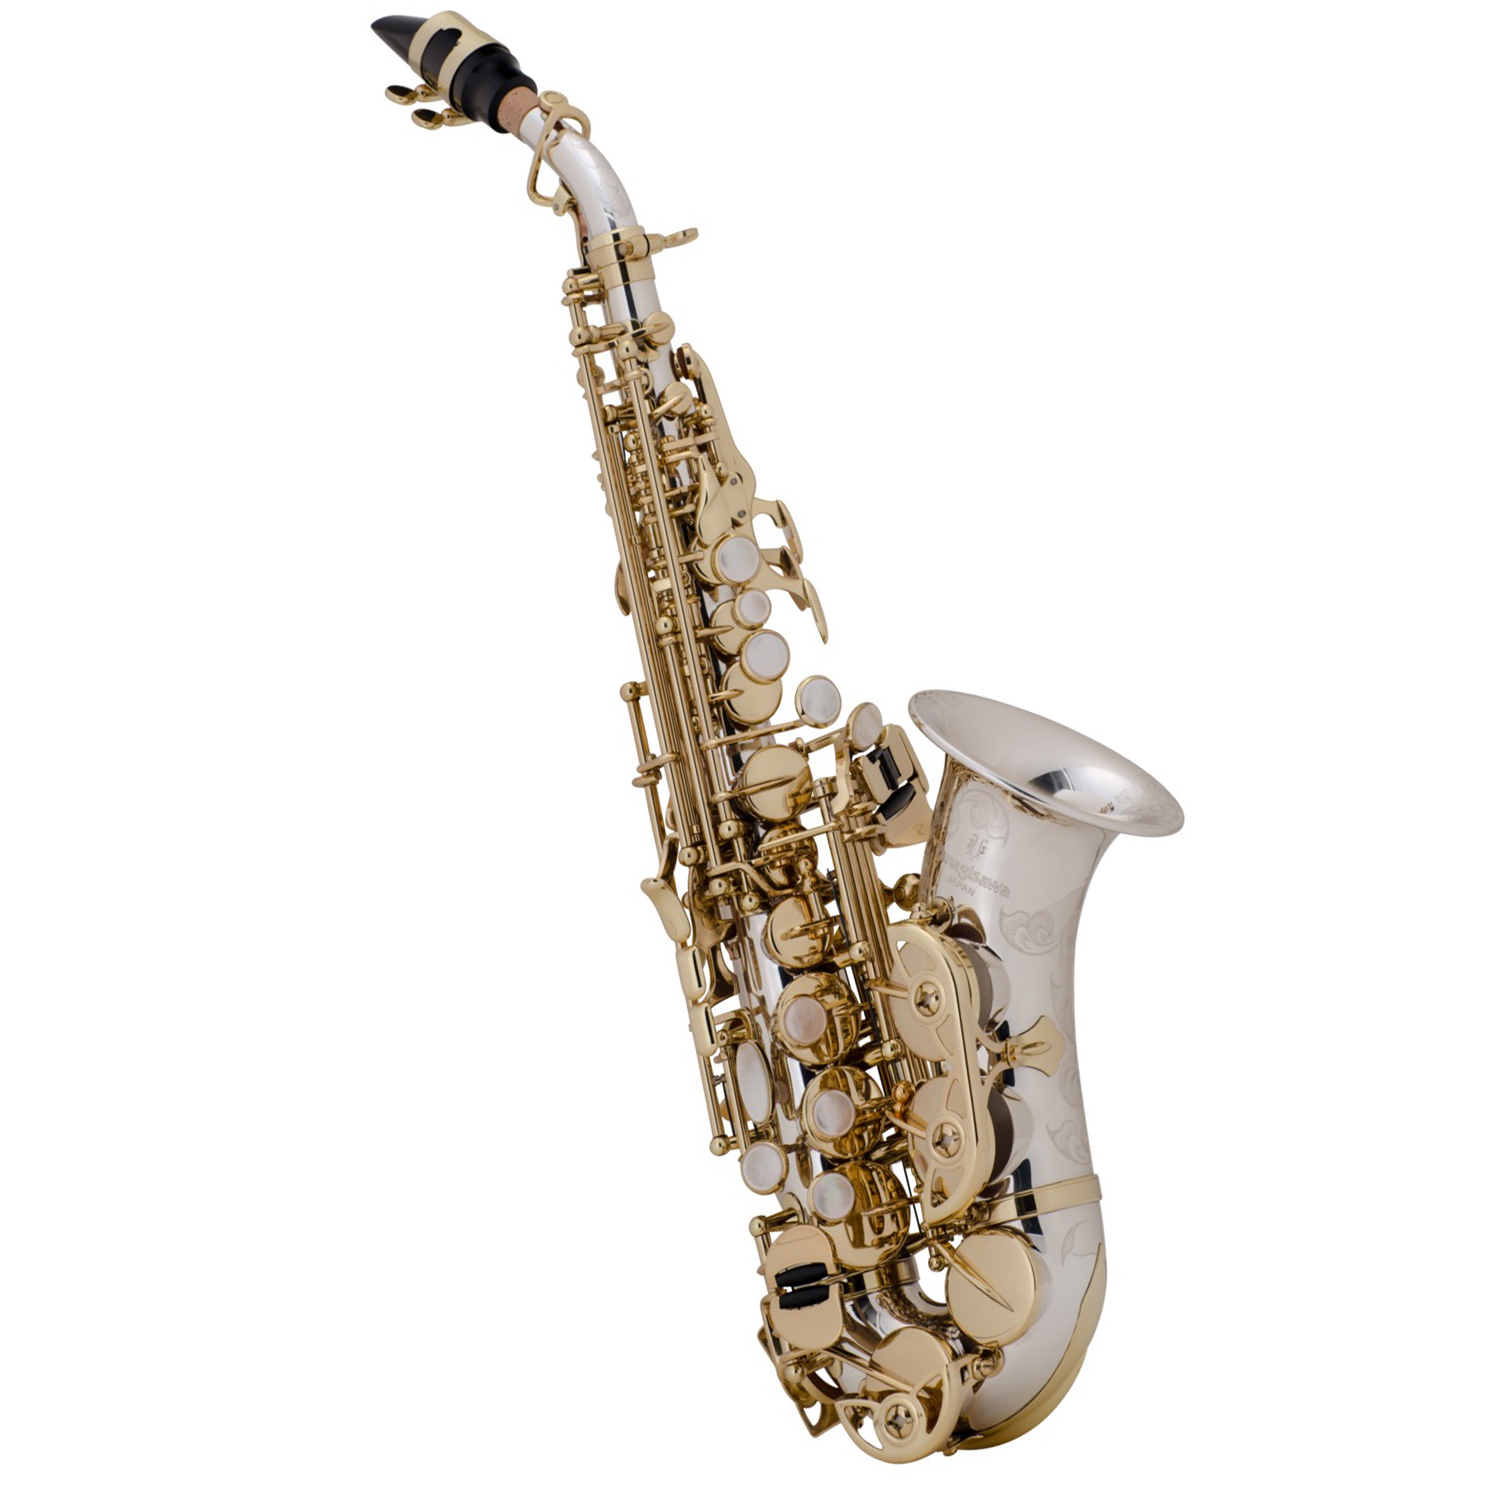 Yanagisawa SC9937 Curved Soprano Saxophone - Sterling Silver Body, Bow, and Bell